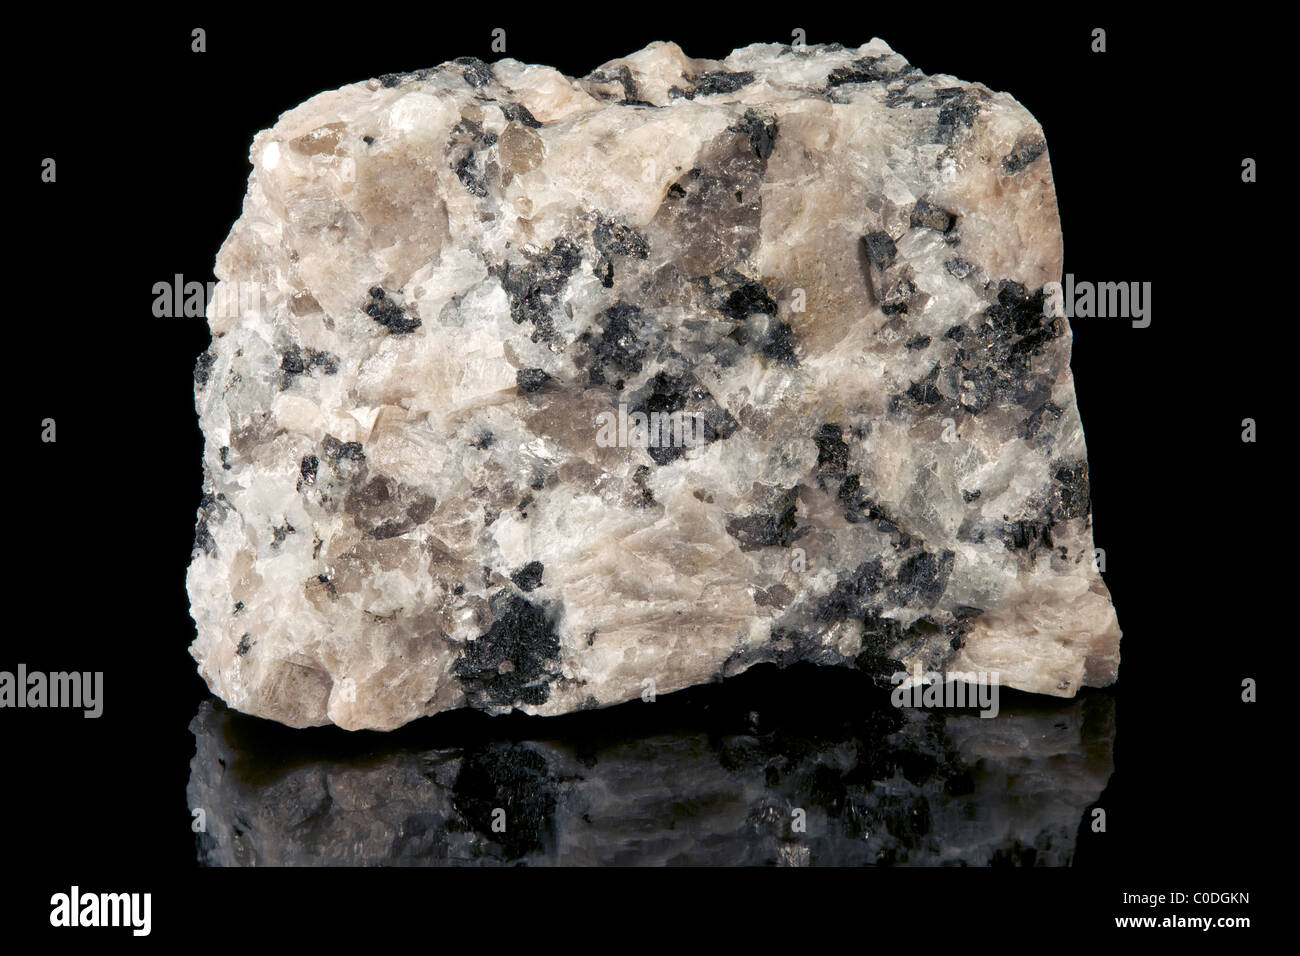 Granite Igneous Rock : Biotite granite plutonic igneous rock minnesota stock